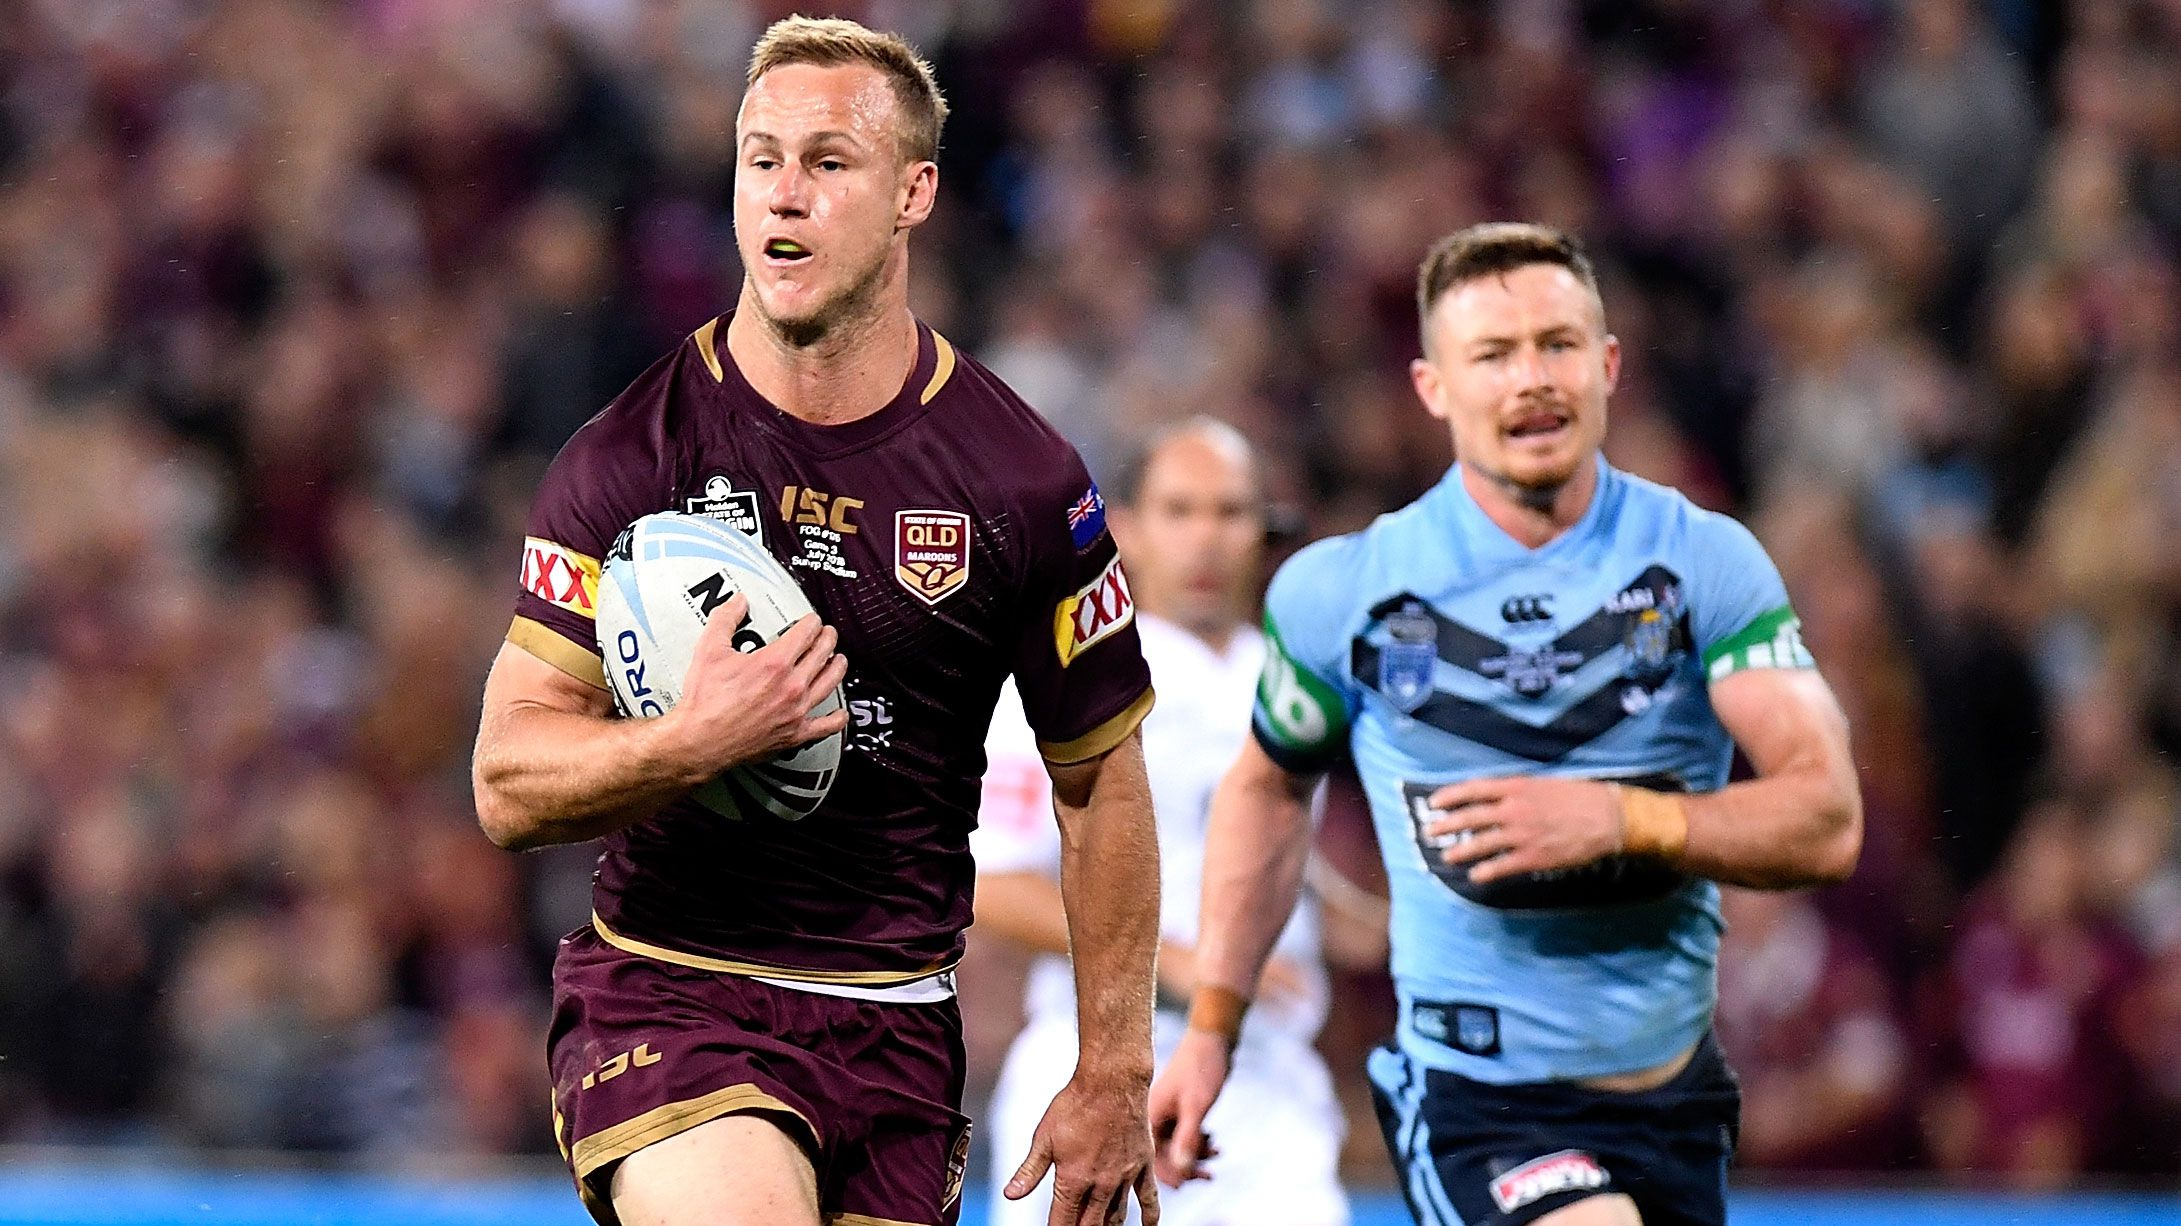 State of Origin Game 1 Ultimate Guide: Everything you need to know